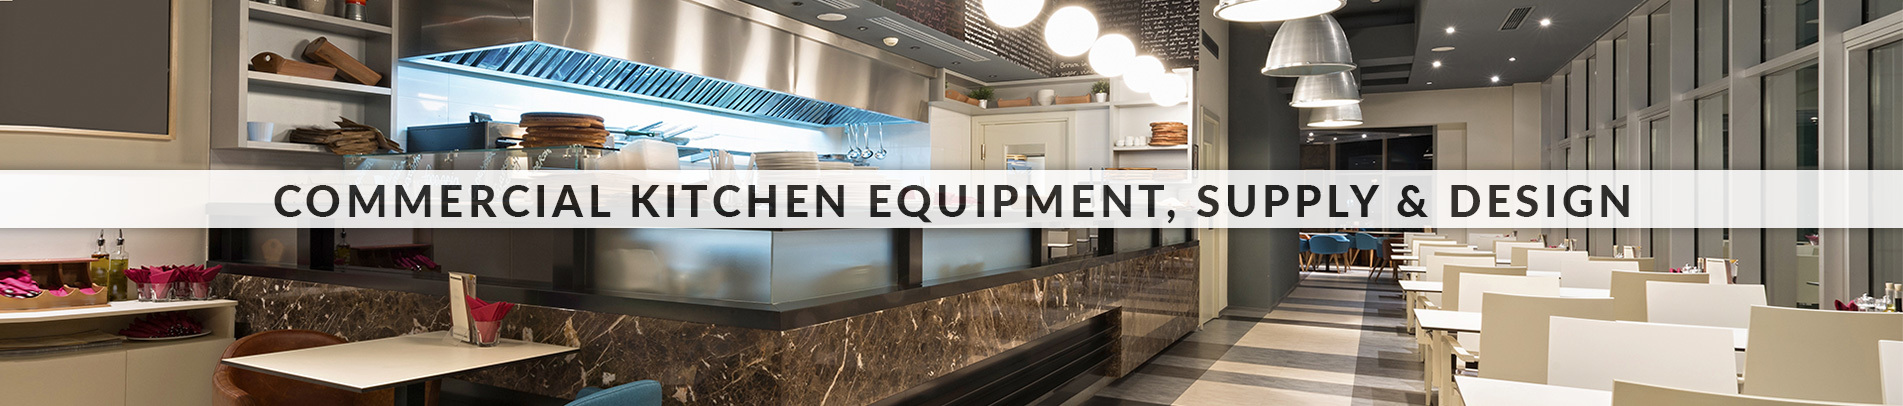 Independent Restaurant Supply custom supply and design of a commercial kitchen full of restaurant equipment.